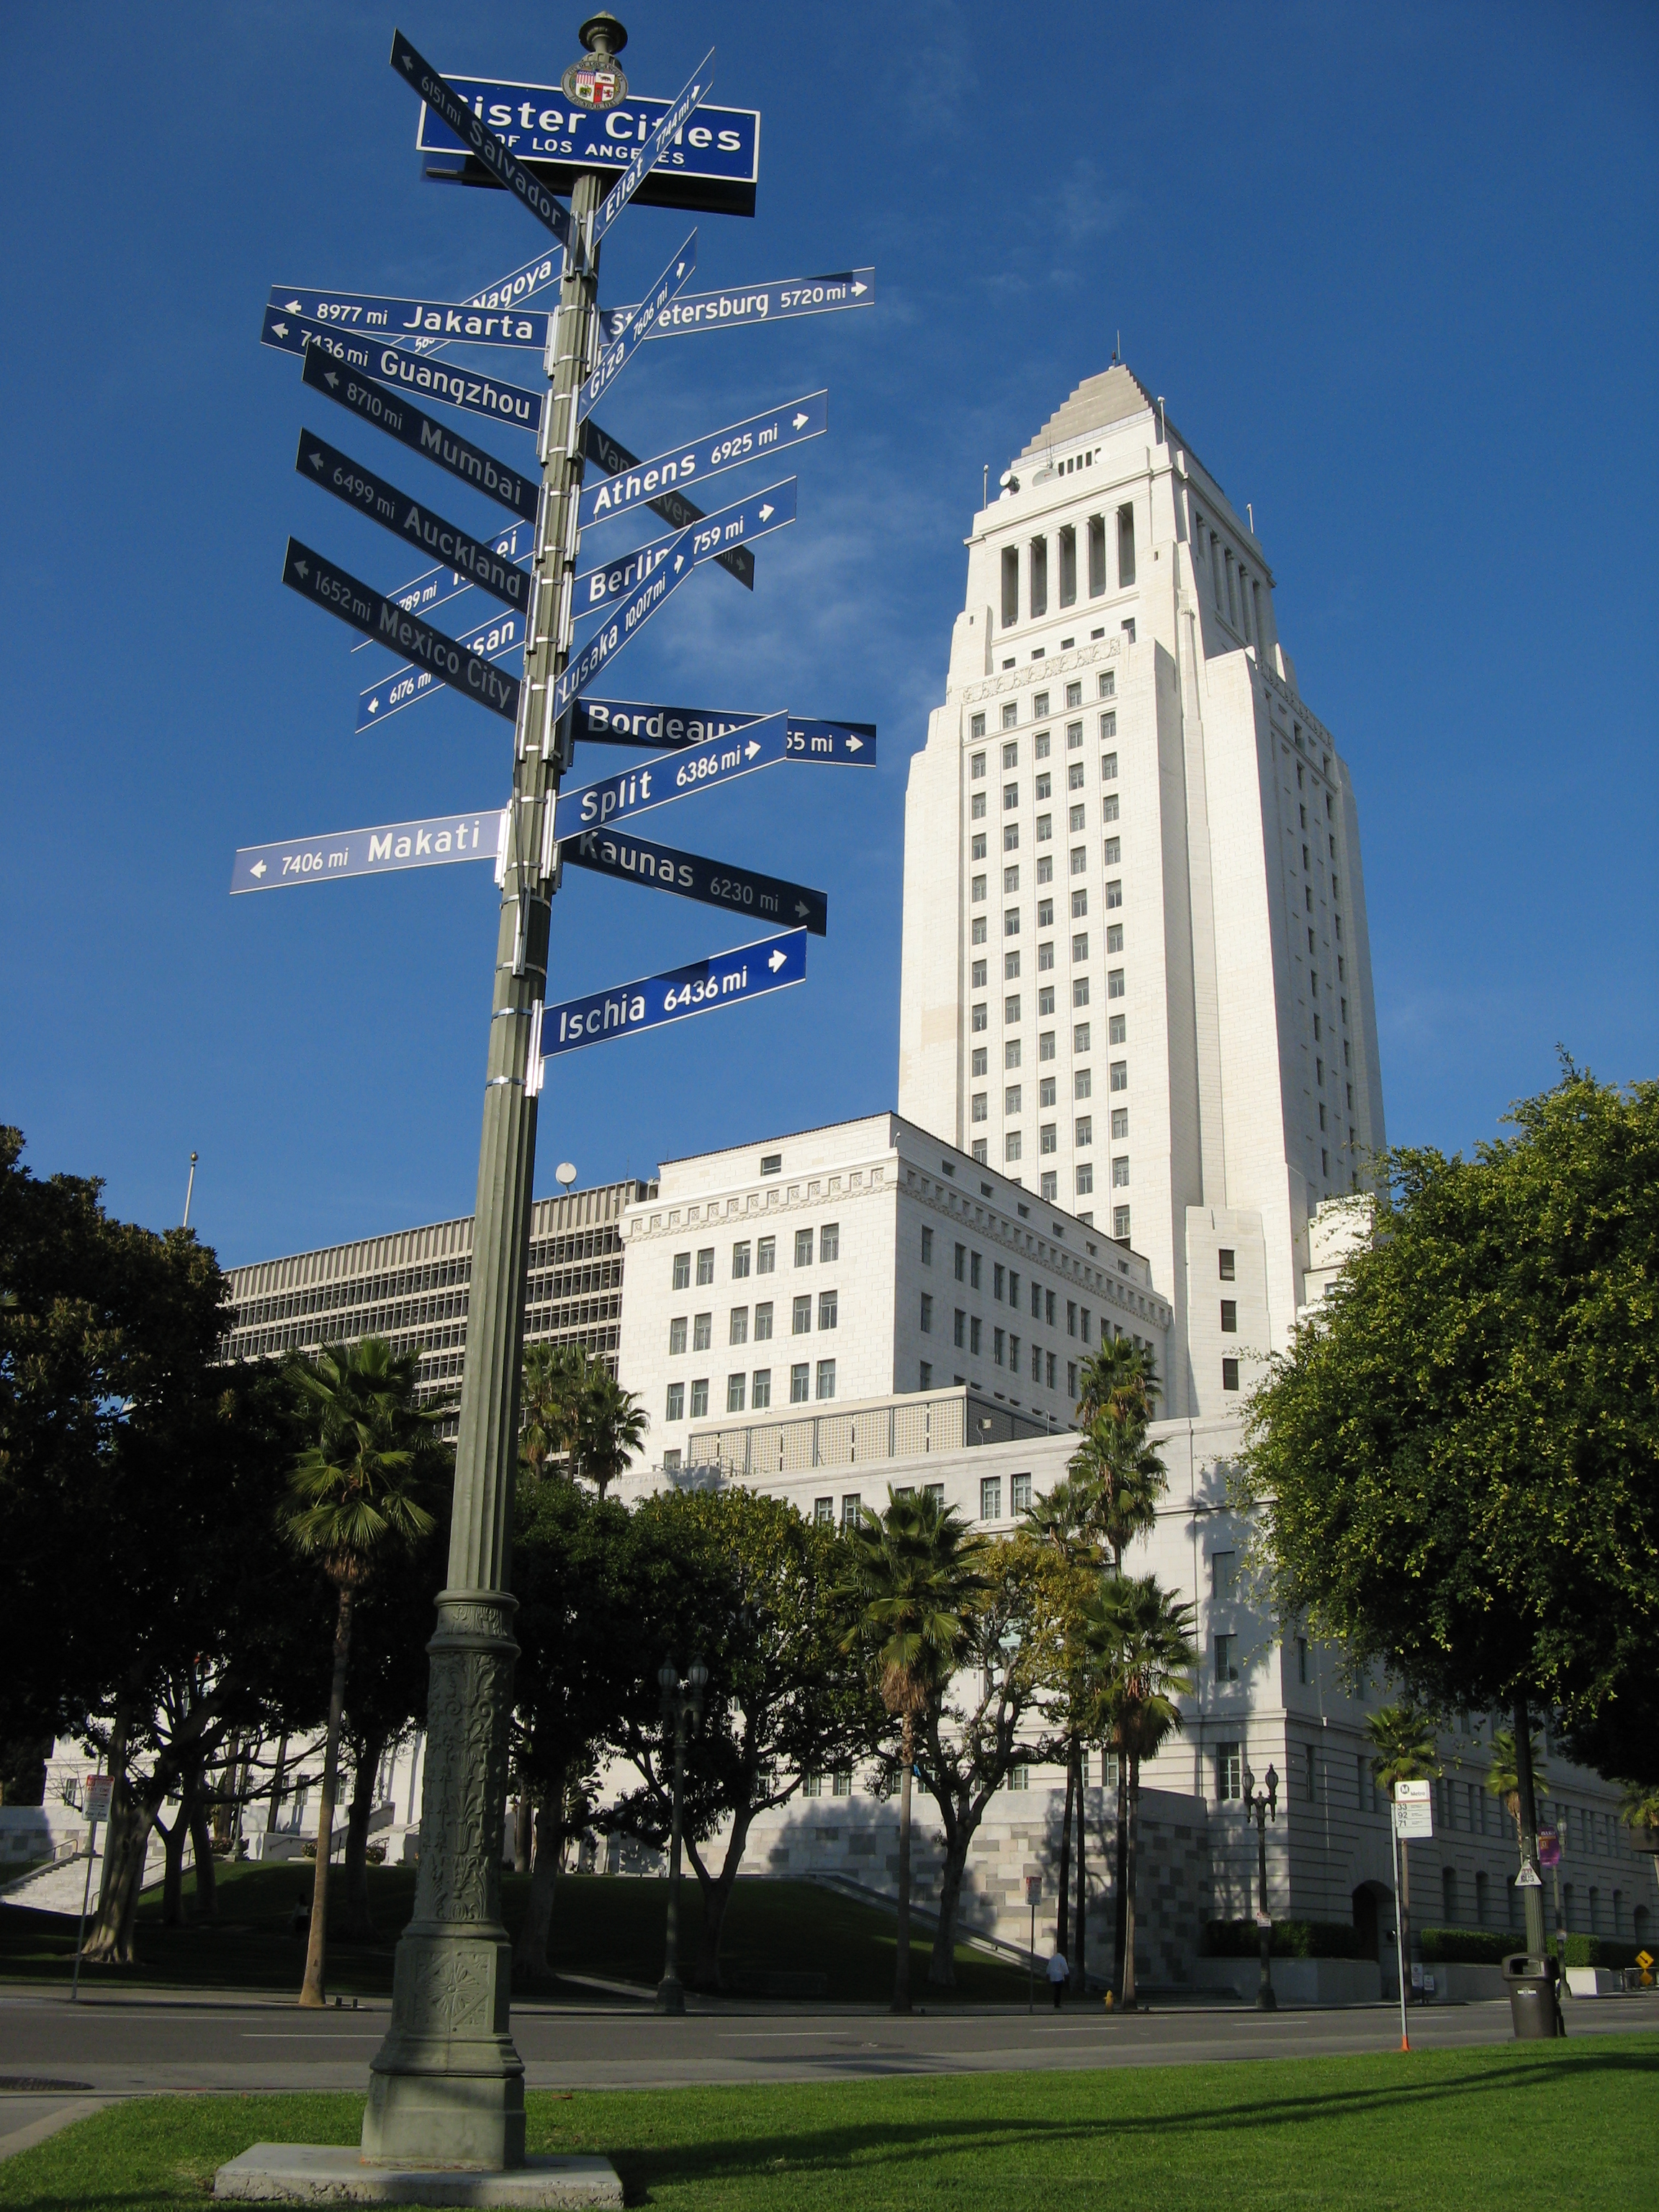 City Of Los Angeles Organizational Chart: Los Angeles City Hall with sister cities 2006.jpg - Wikimedia ,Chart